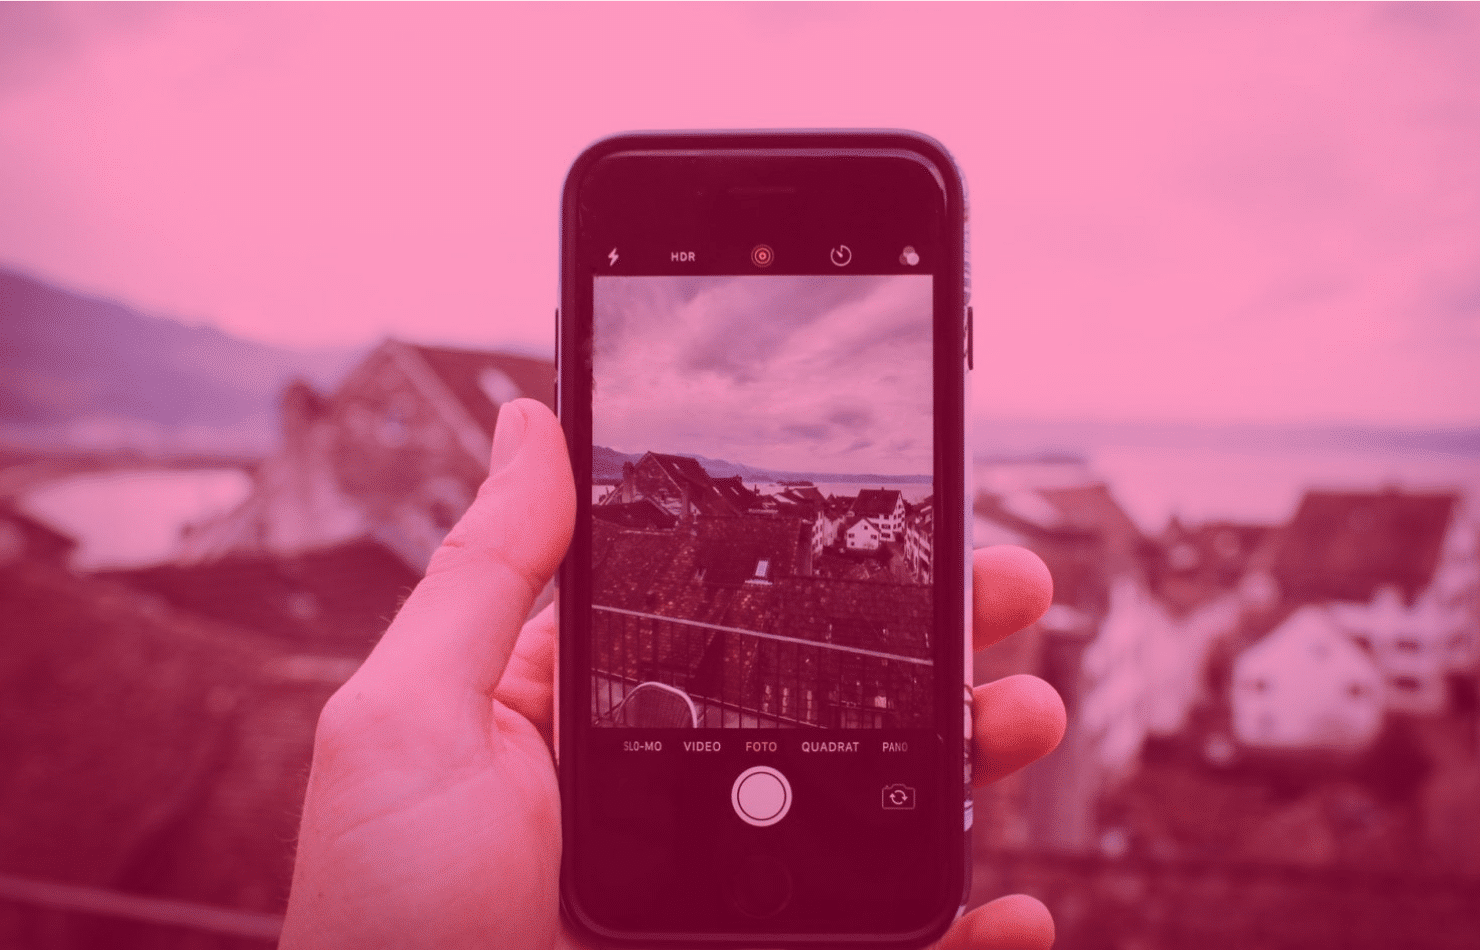 Photo editing apps for a quick fix